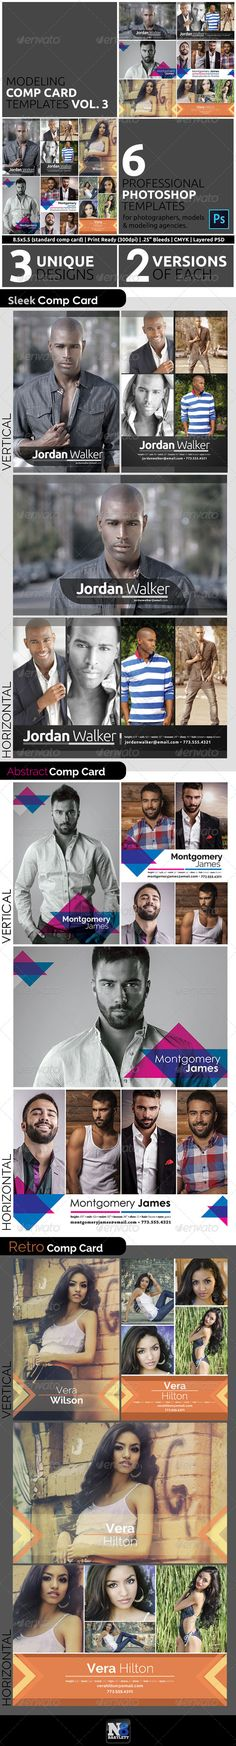 Model Comp Card Template Kit Vol. 3  Models, actors, actresses all need comp cards to leave behind at auditions, model calls, and casting calls. This comp card template bundle is perfect for modeling agencies, photographers, models, actors and designers. There are 6 templates in total with 3 unique designs, each with various layout orientations. This kit is perfect to use now and save for later. Your clients will certainly be impressed with these professional designs.  The included Photoshop…